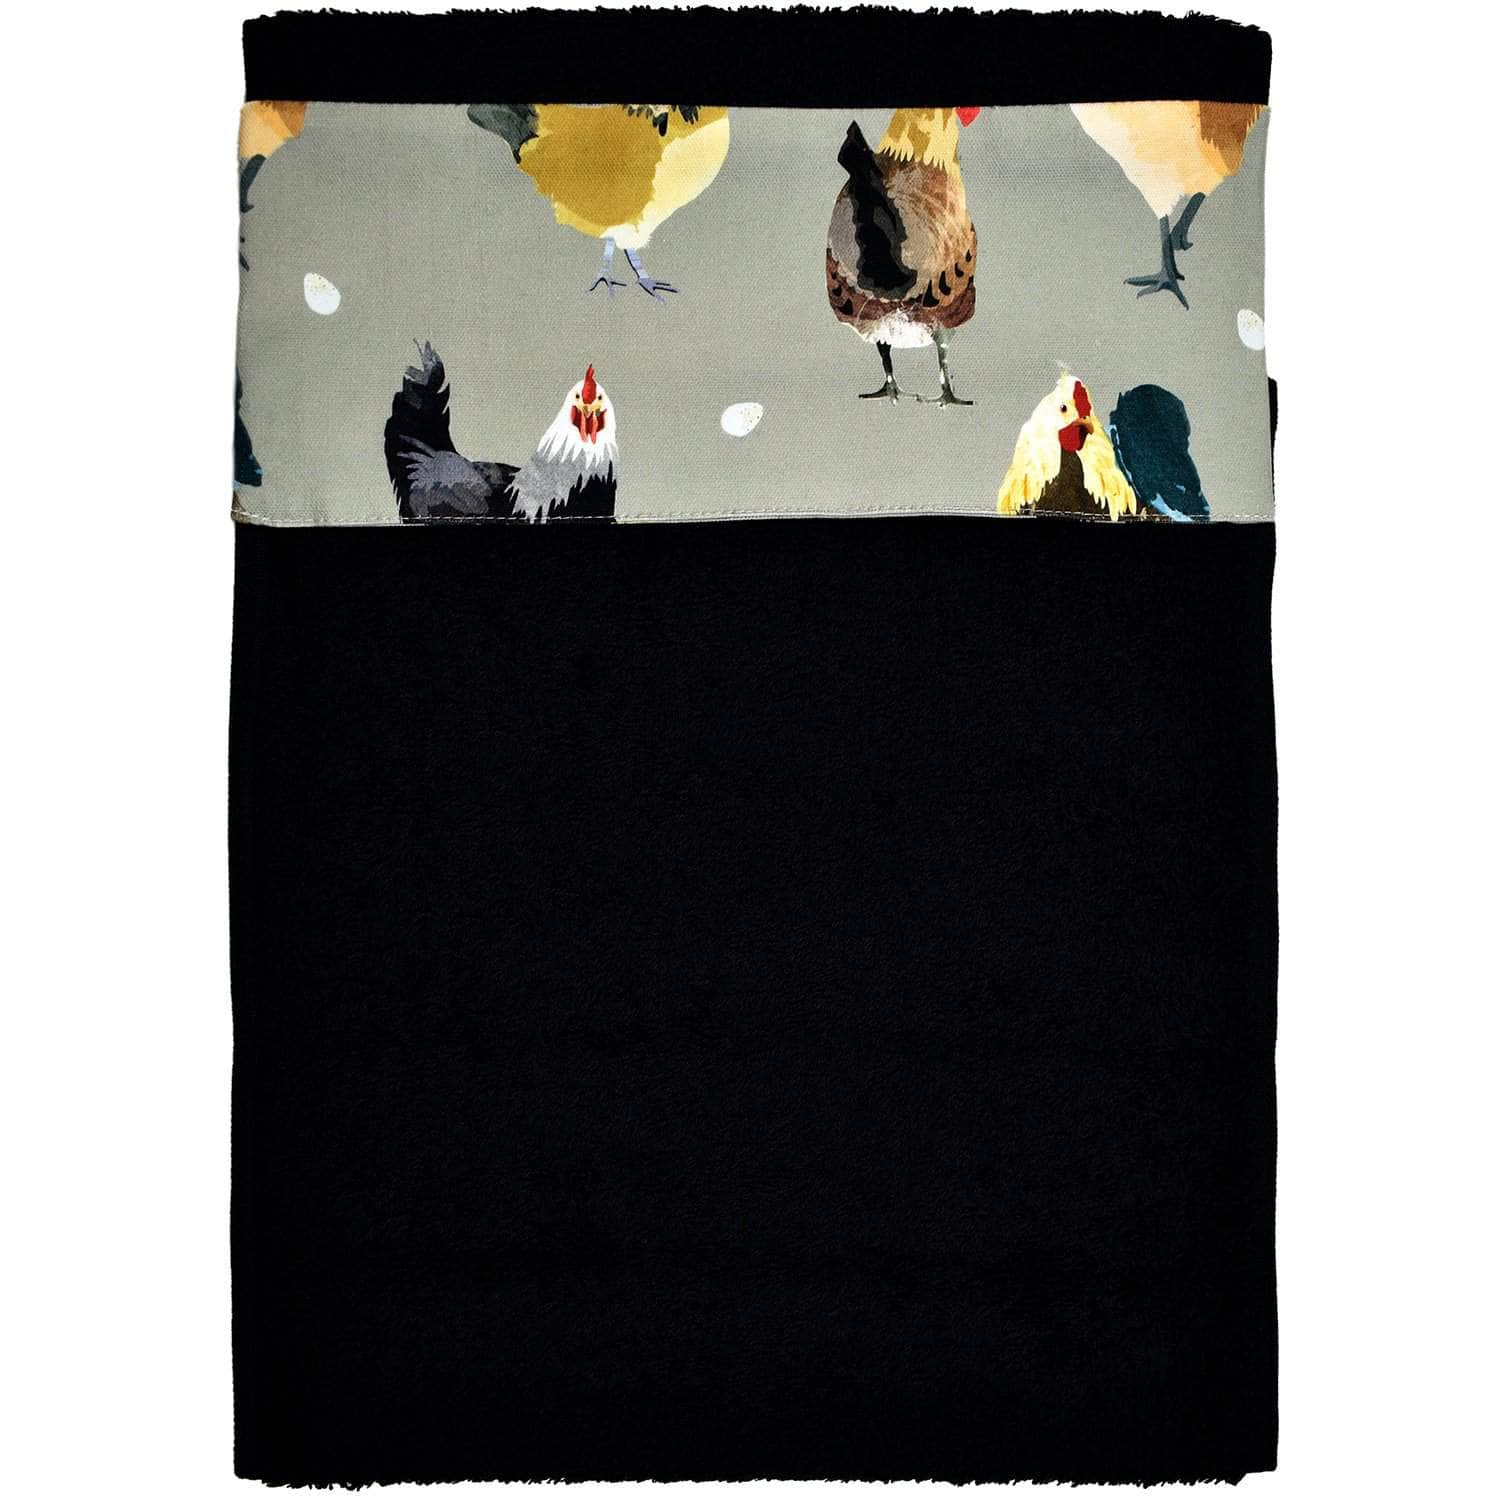 *New* Narrow (32 cm) hanging towel with velcro attachment - 'The Chickens'